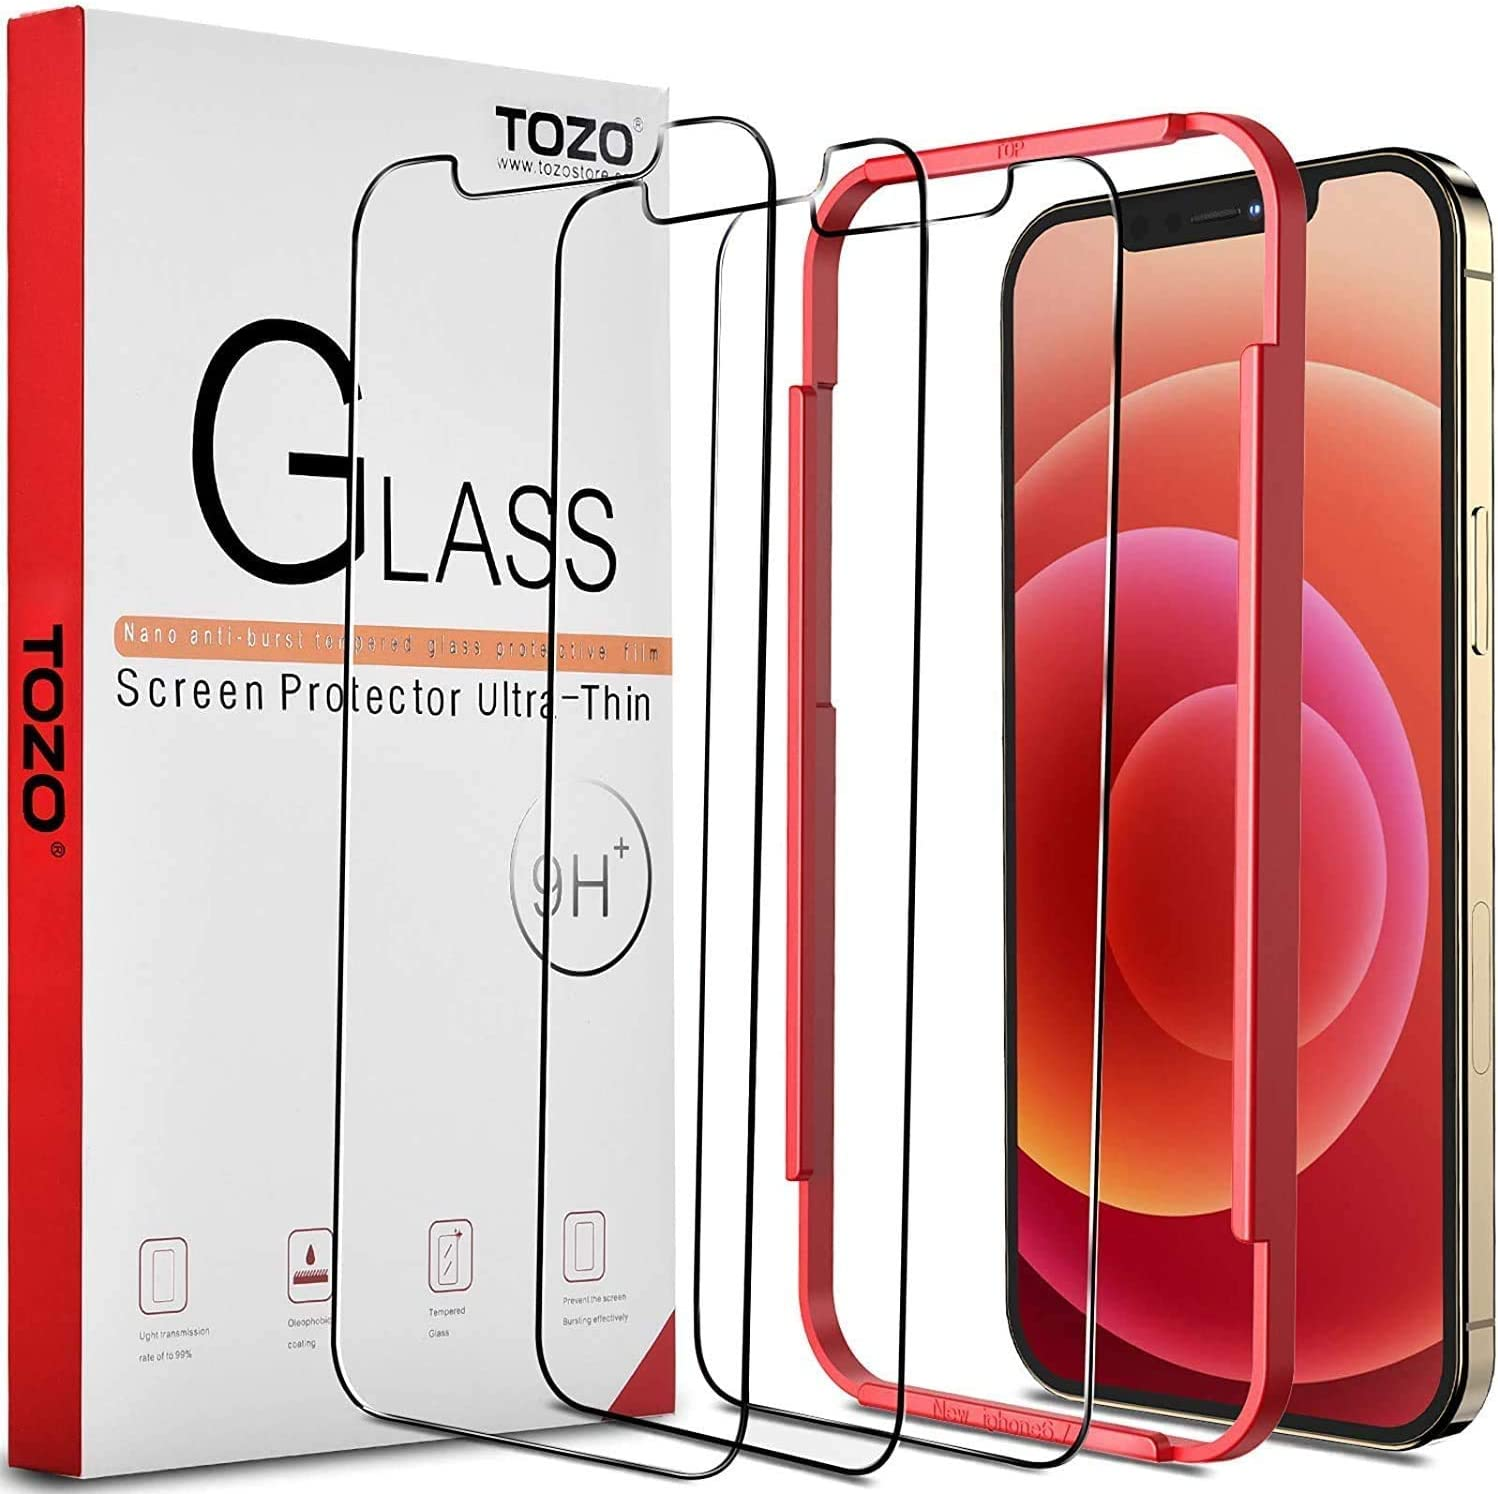 TOZO 3 Pack Screen Protector Ultra-Thin $5.00 Coupon